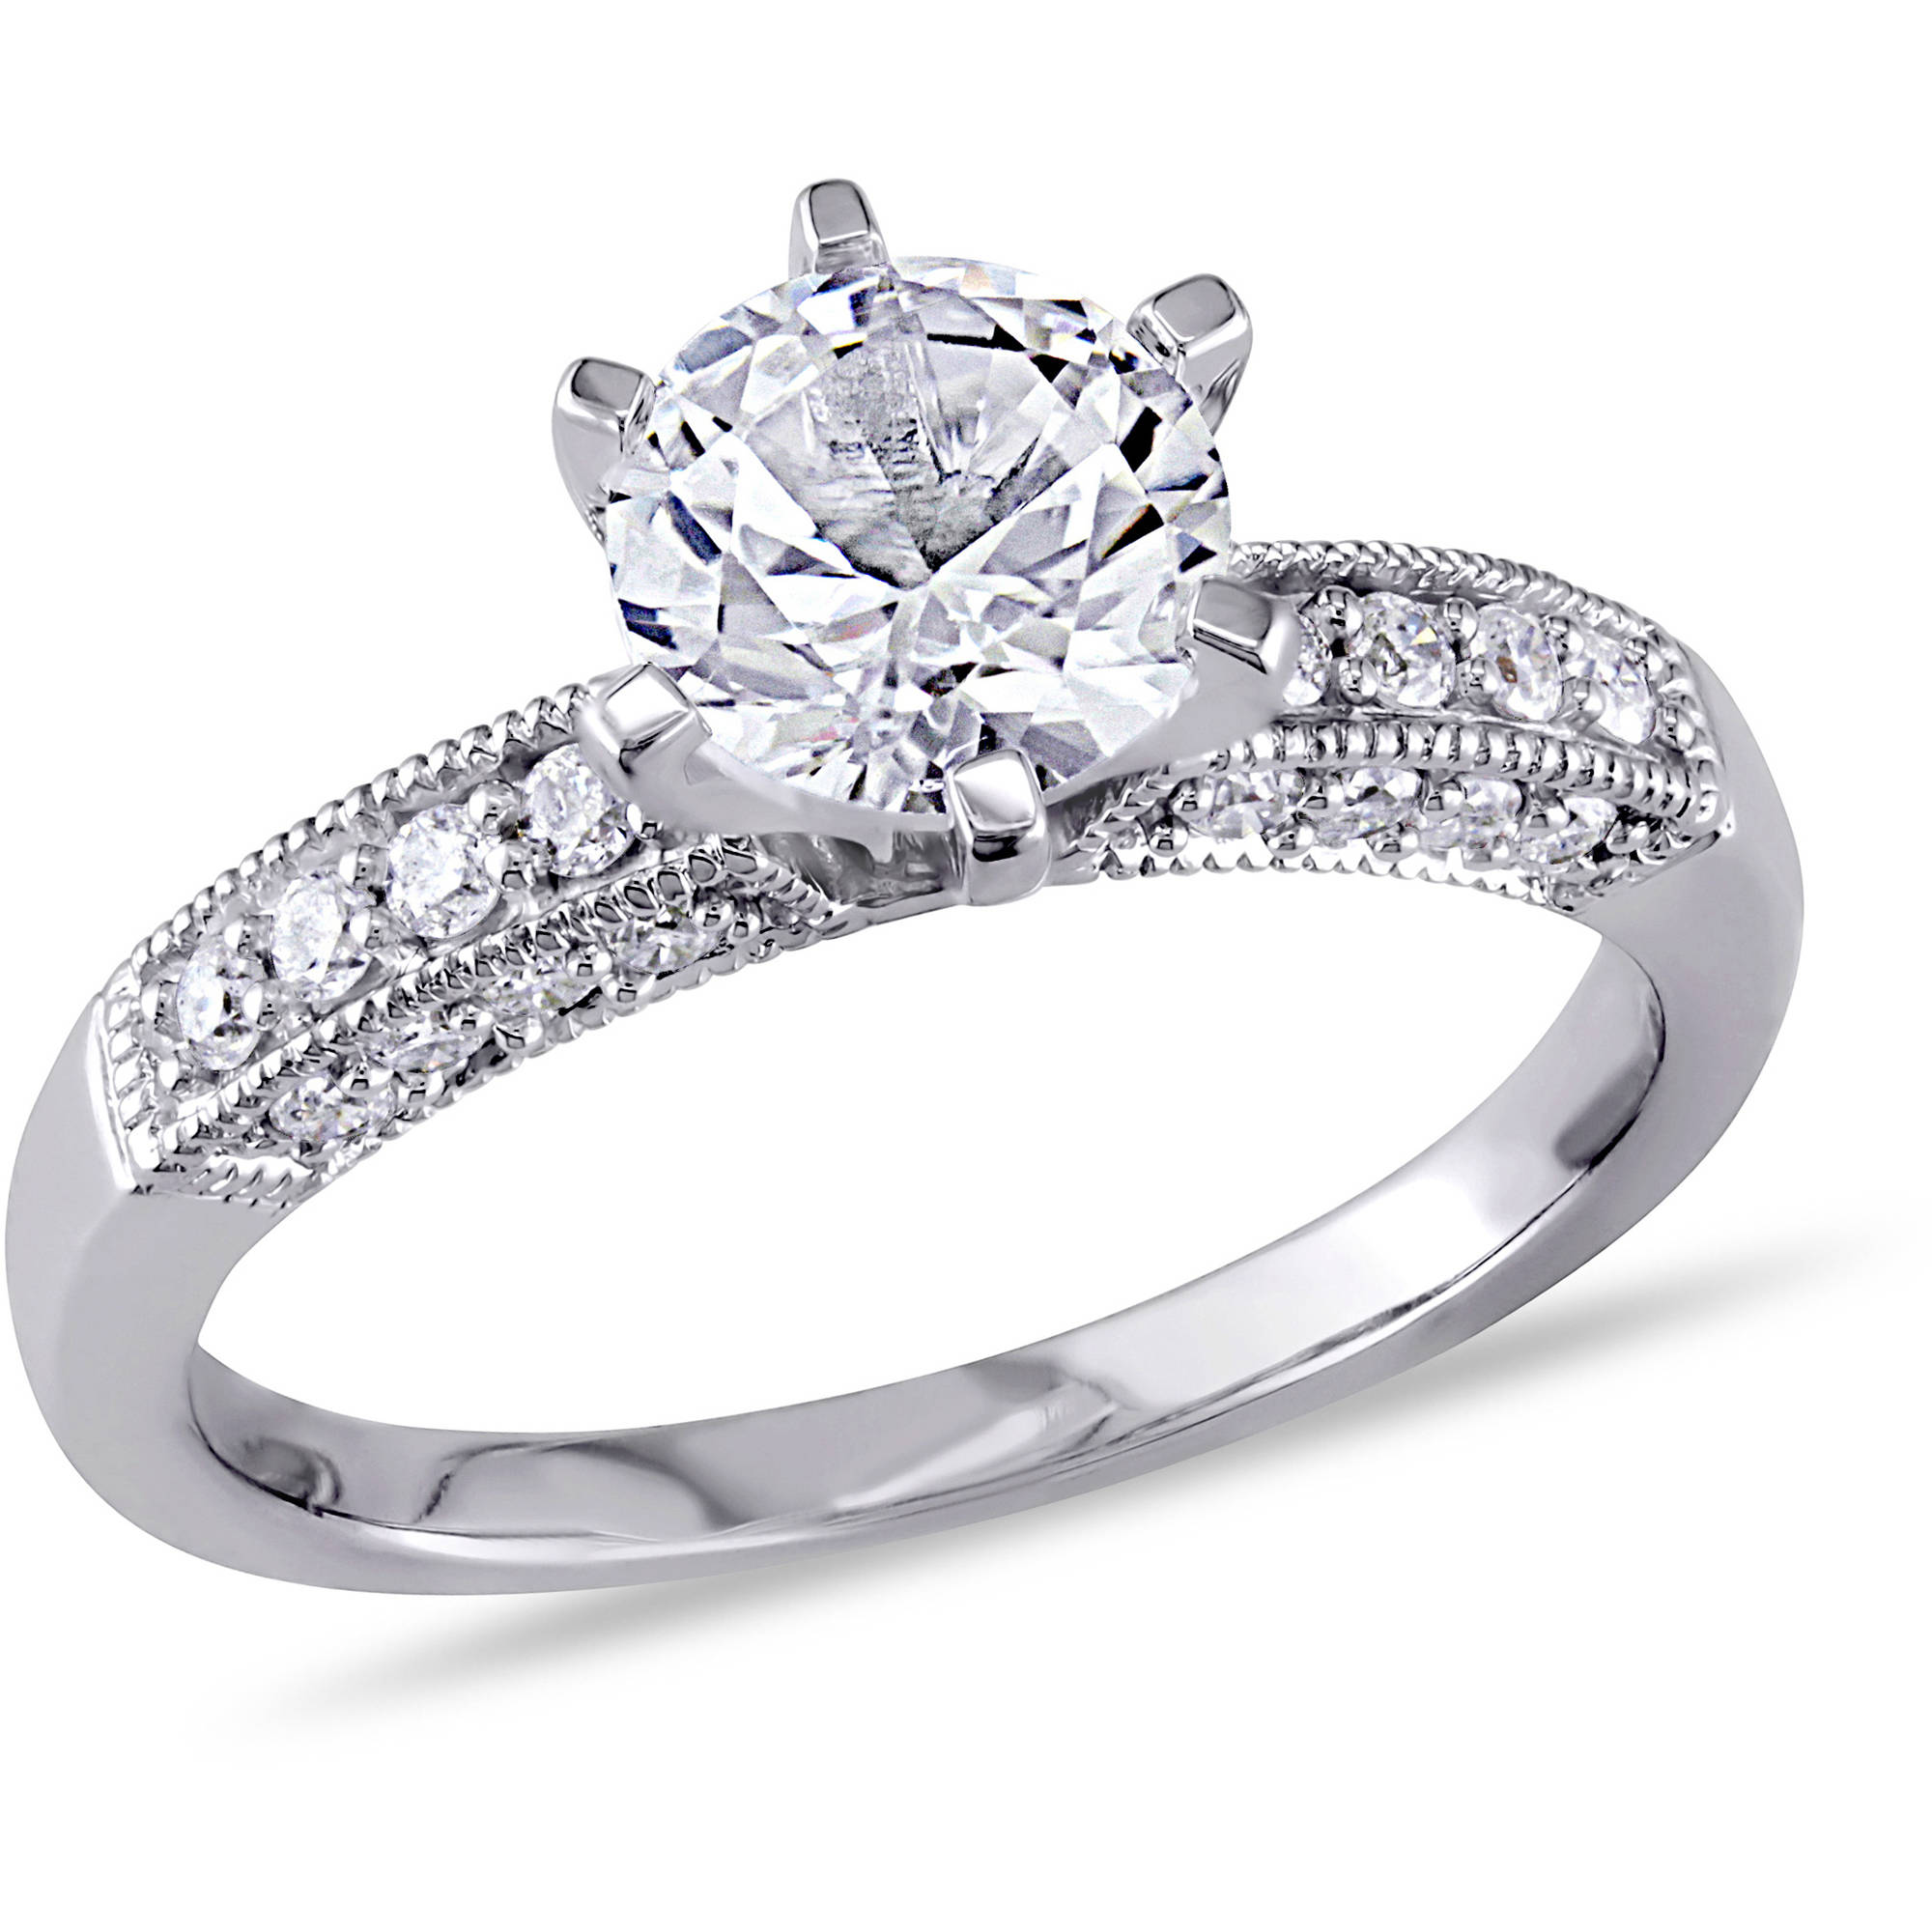 gg three stone and ring goods diamond deals white pasted created accent groupon latest sapphire